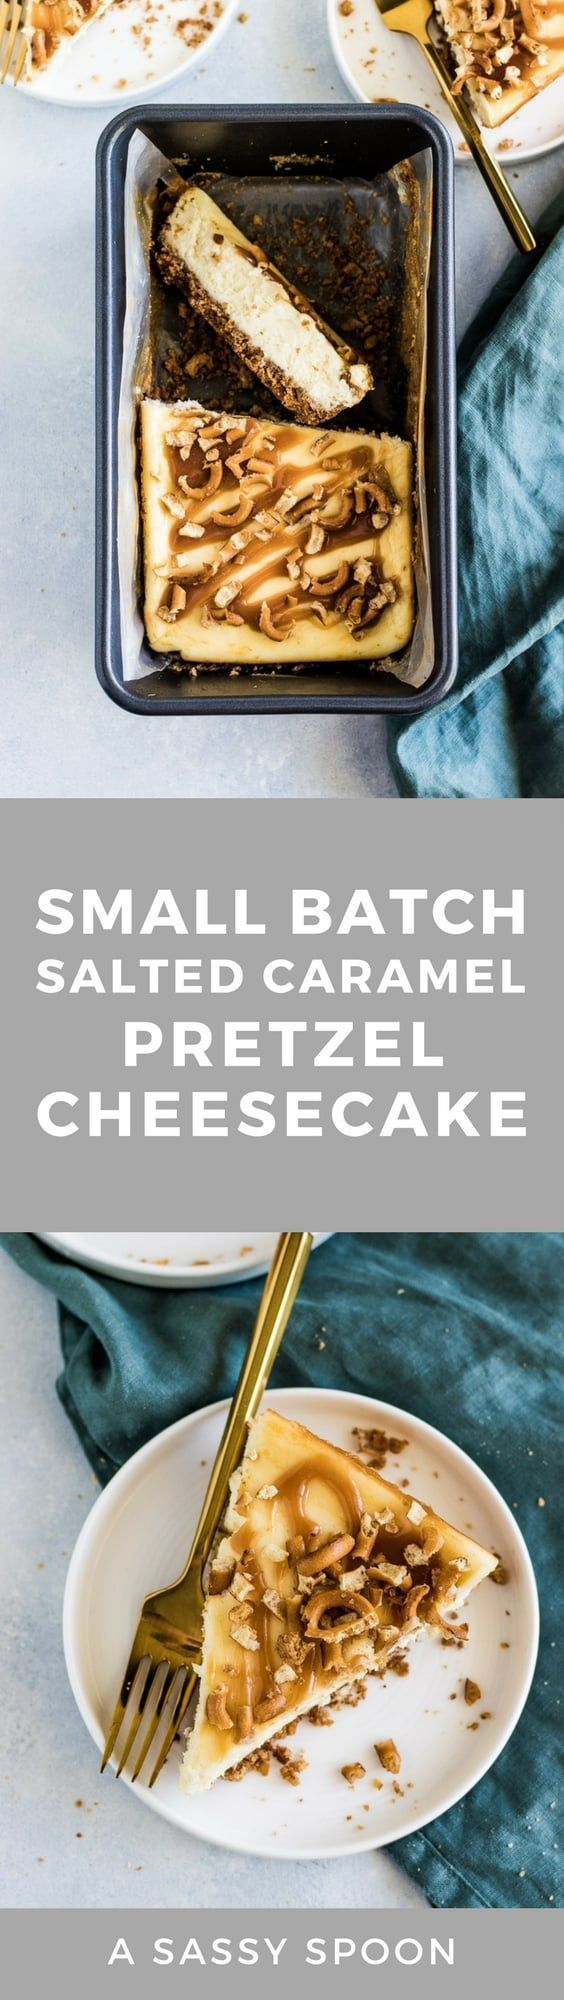 Deliciously creamy, small batch salted caramel pretzel cheesecake made with graham crackers, pretzels, and salted caramel. via @asassyspoon